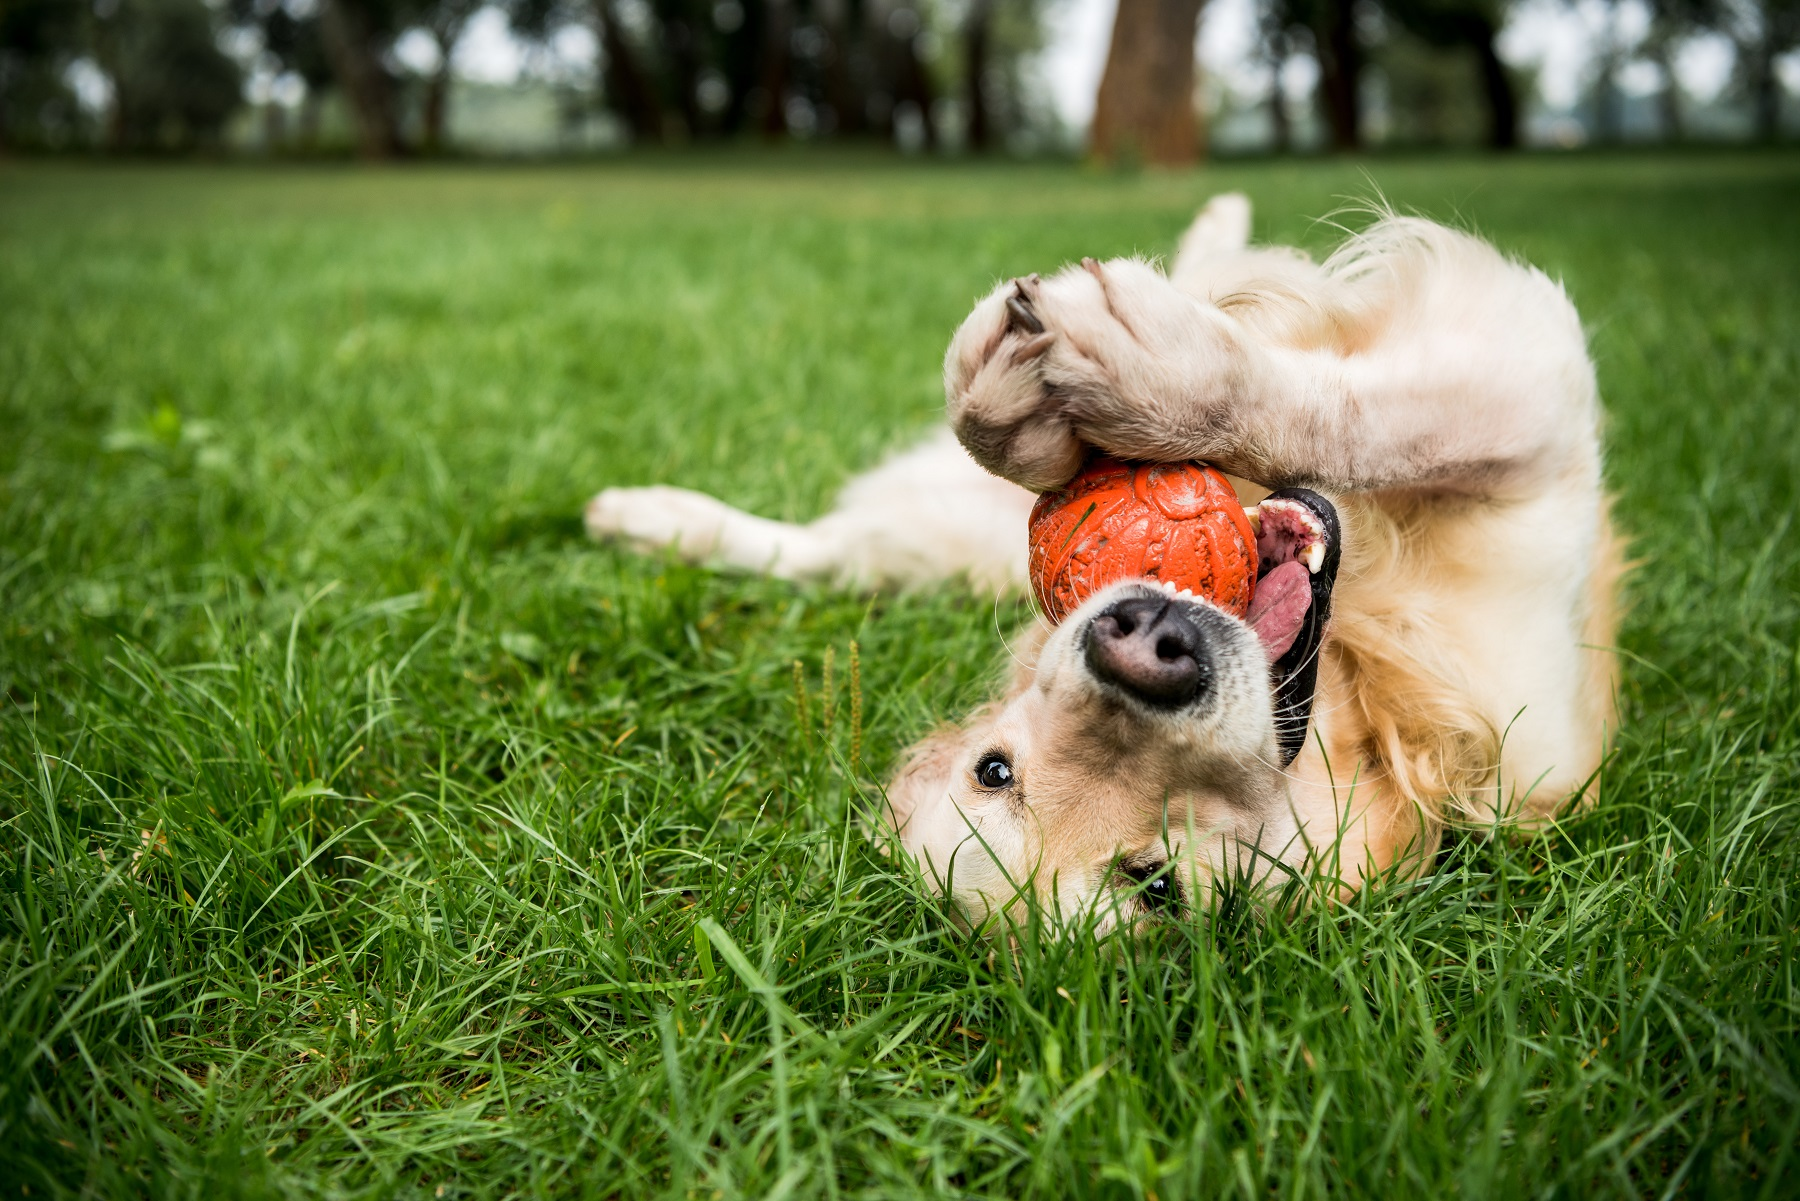 Should You Own a Dog? Here Are 5 Health Benefits Associated With Having a Dog